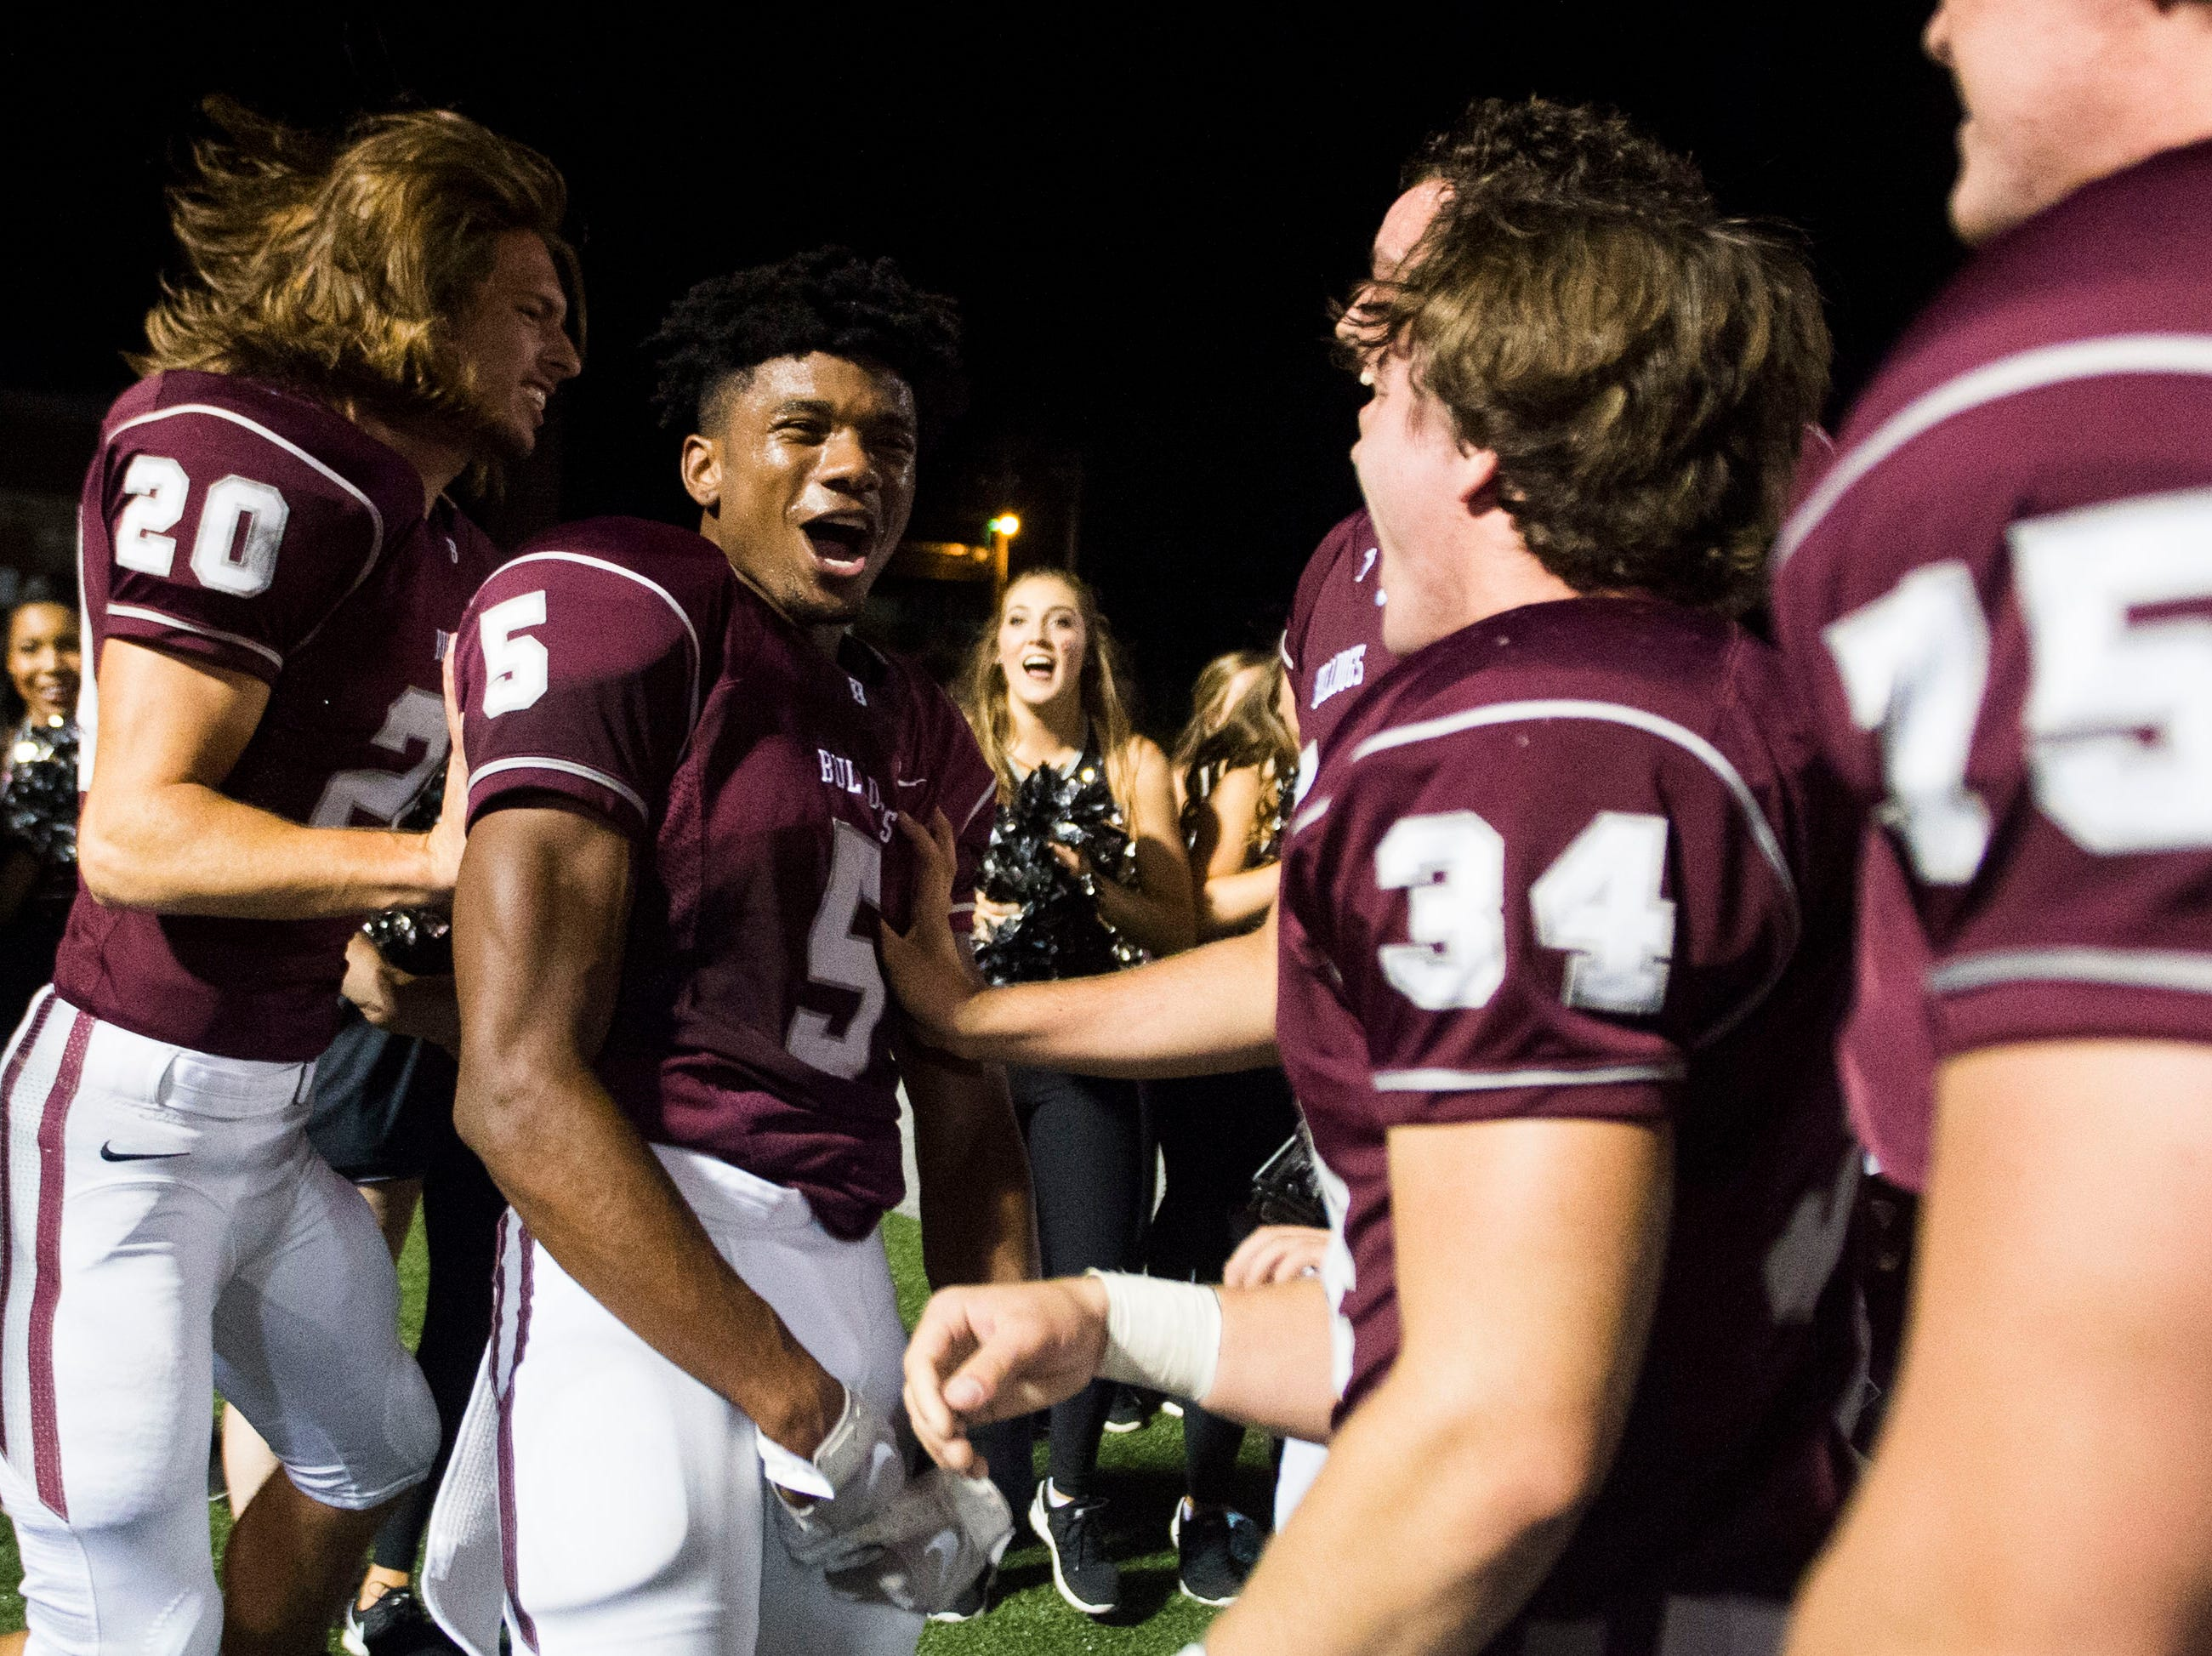 Bearden players celebrate after a game between Bearden and Farragut at Bearden Thursday, Oct. 11, 2018. Bearden took down Farragut 17-13.